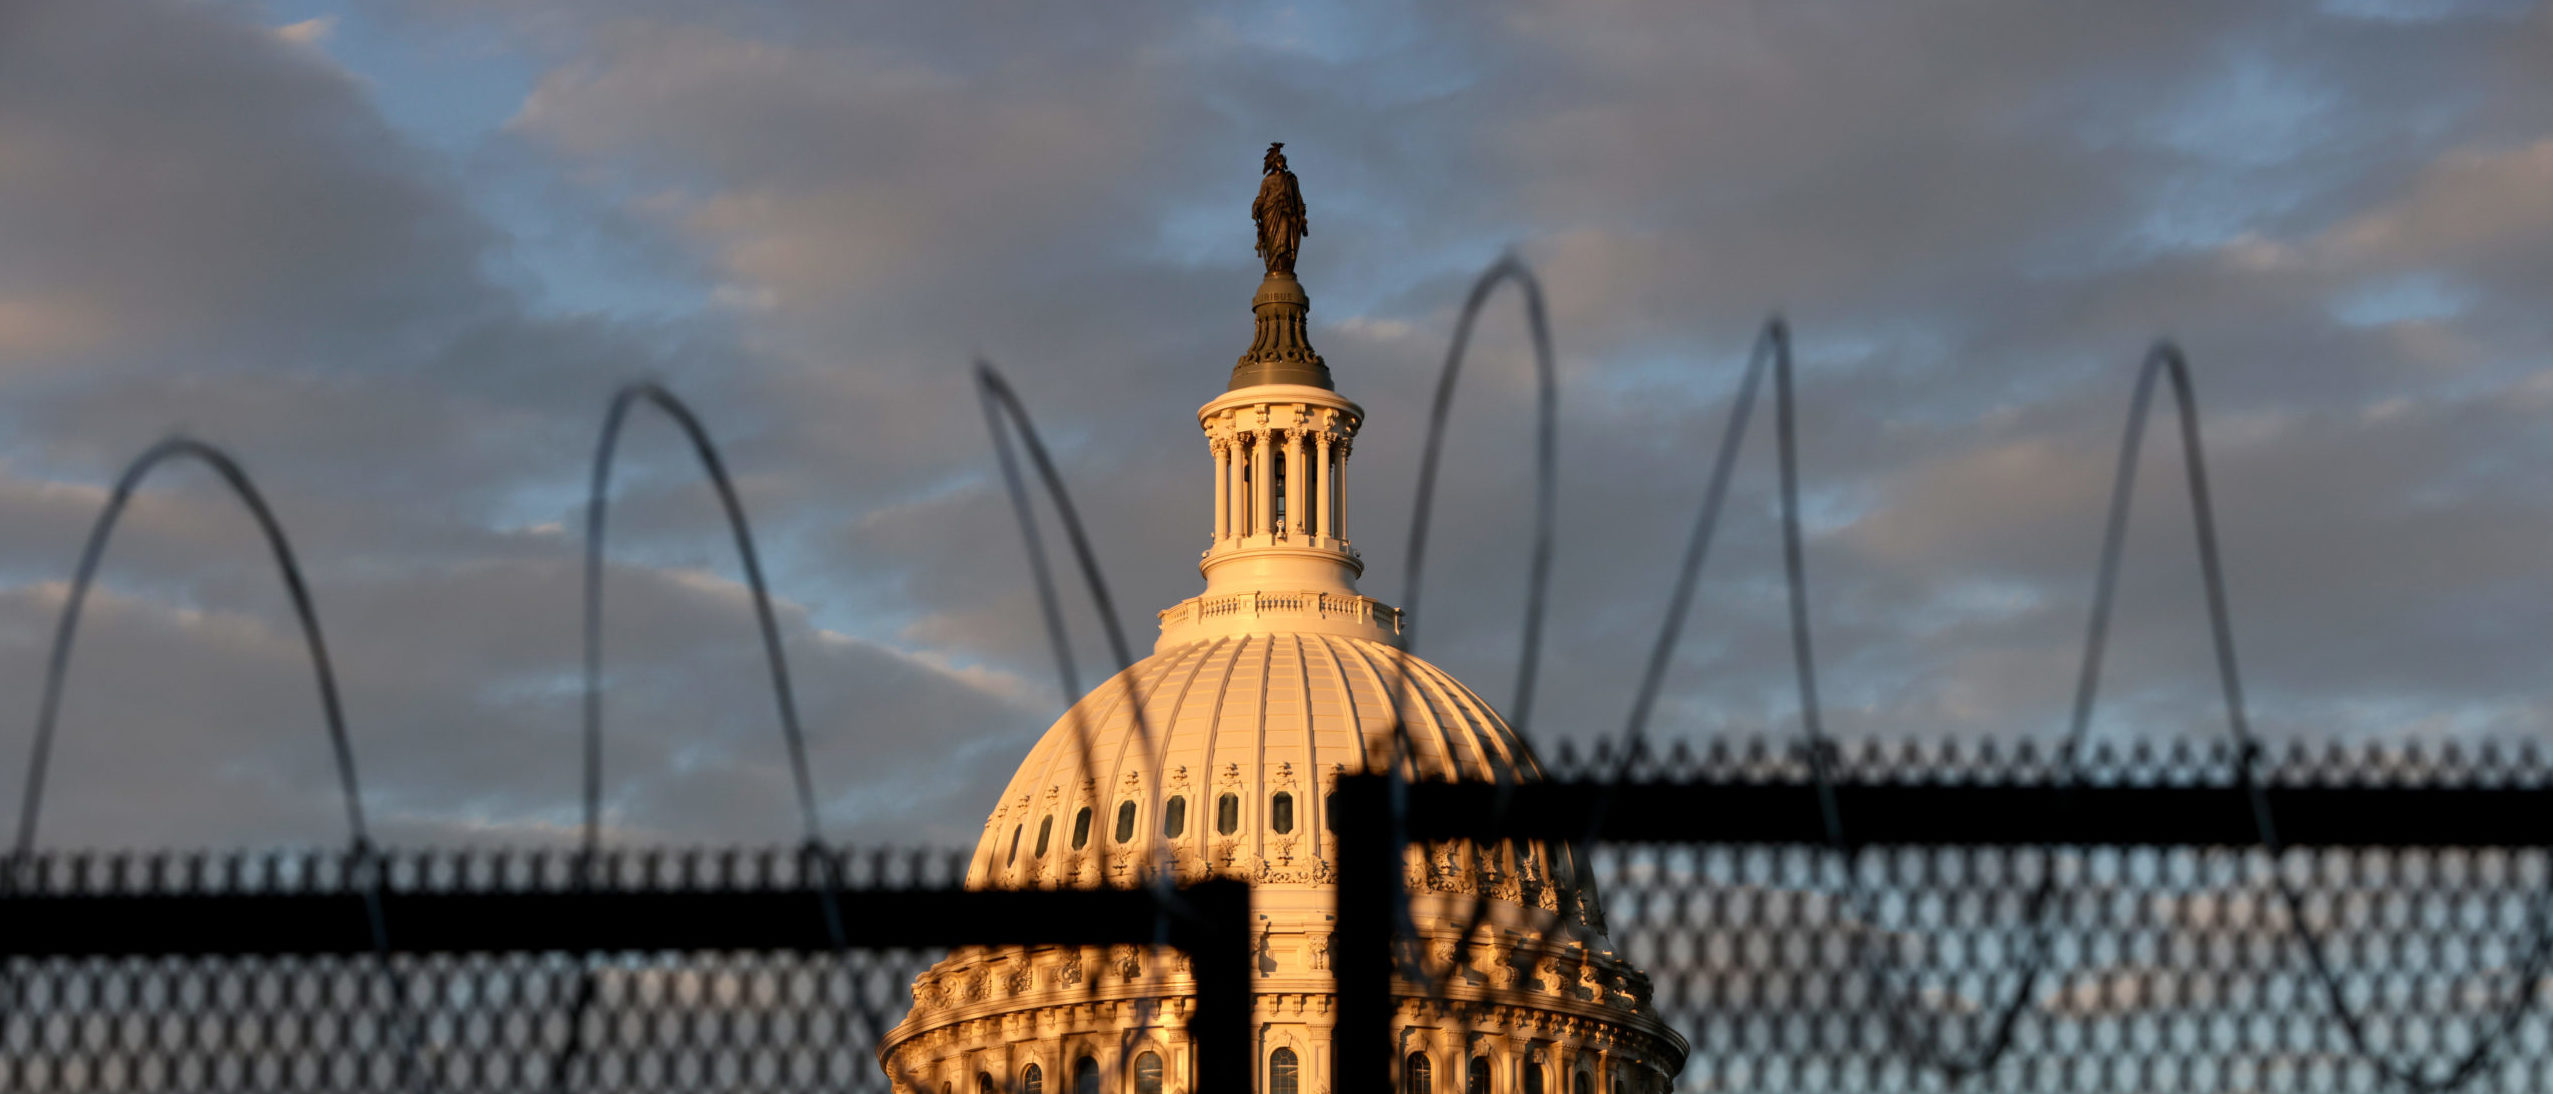 WASHINGTON, DC - JANUARY 16: The U.S. Capitol is seen behind a fence with razor wire during sunrise on January 16, 2021 in Washington, DC. After last week's riots at the U.S. Capitol Building, the FBI has warned of additional threats in the nation's capital and in all 50 states. According to reports, as many as 25,000 National Guard soldiers will be guarding the city as preparations are made for the inauguration of Joe Biden as the 46th U.S. President. (Photo by Samuel Corum/Getty Images)